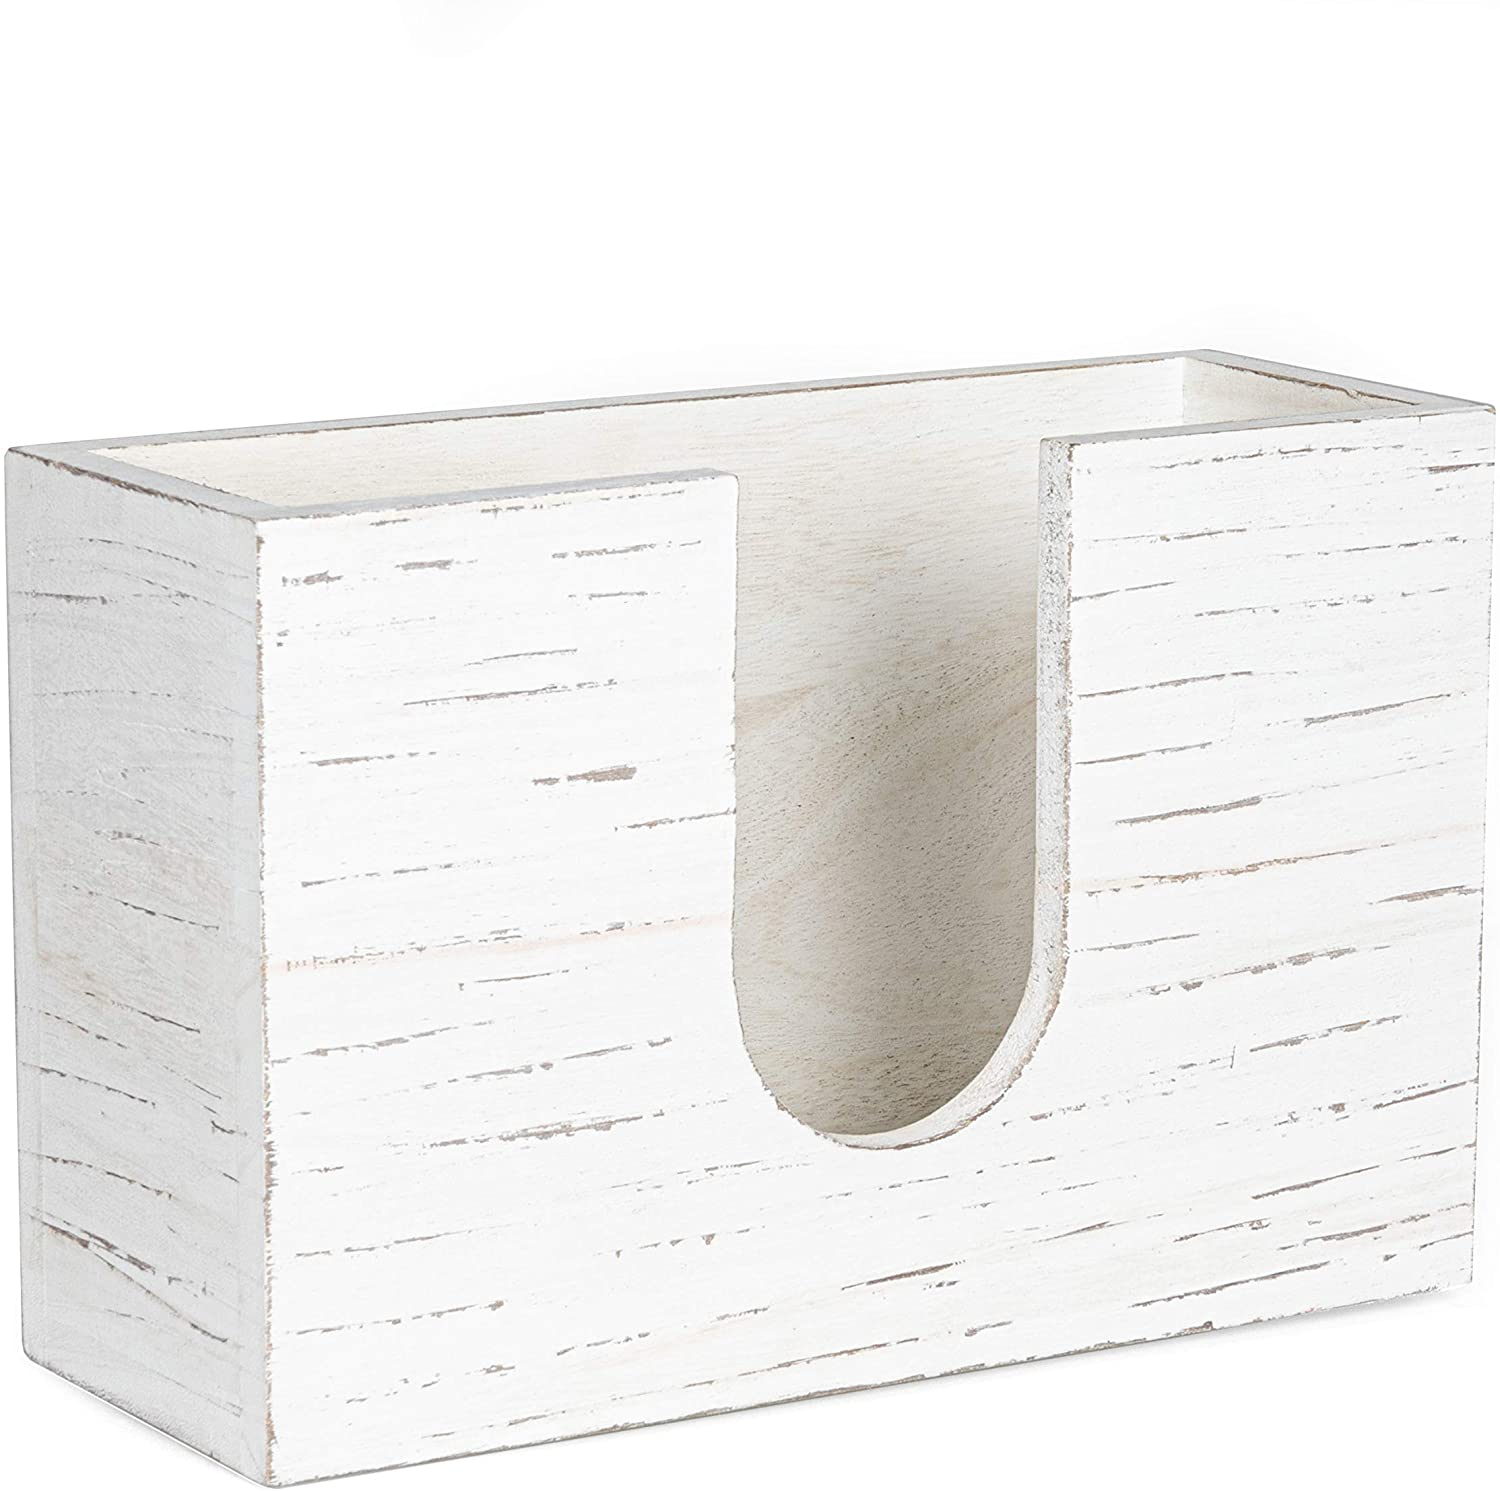 Wood Paper Towel Dispenser - Rustic Farmhouse White Wooden Multifold Hand Towel Holder